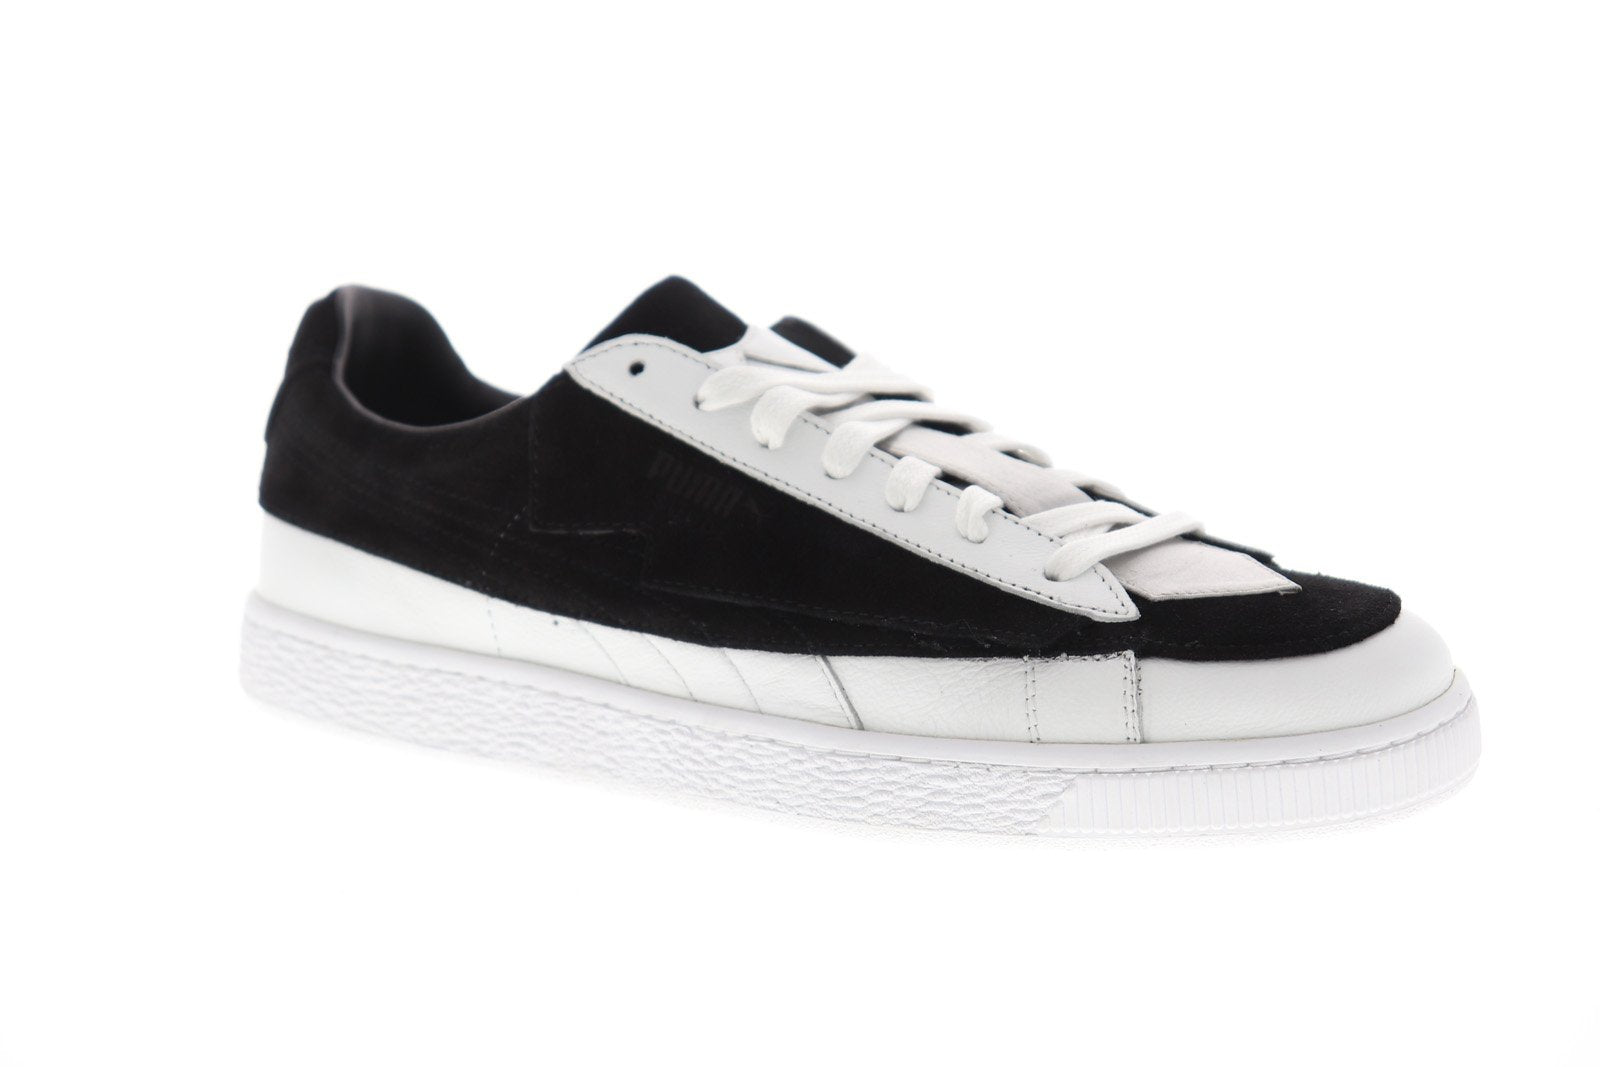 half off 6cb31 ceeb9 Puma Suede Classic X Karl 2 Mens Black Suede Low Top Lace Up Sneakers Shoes